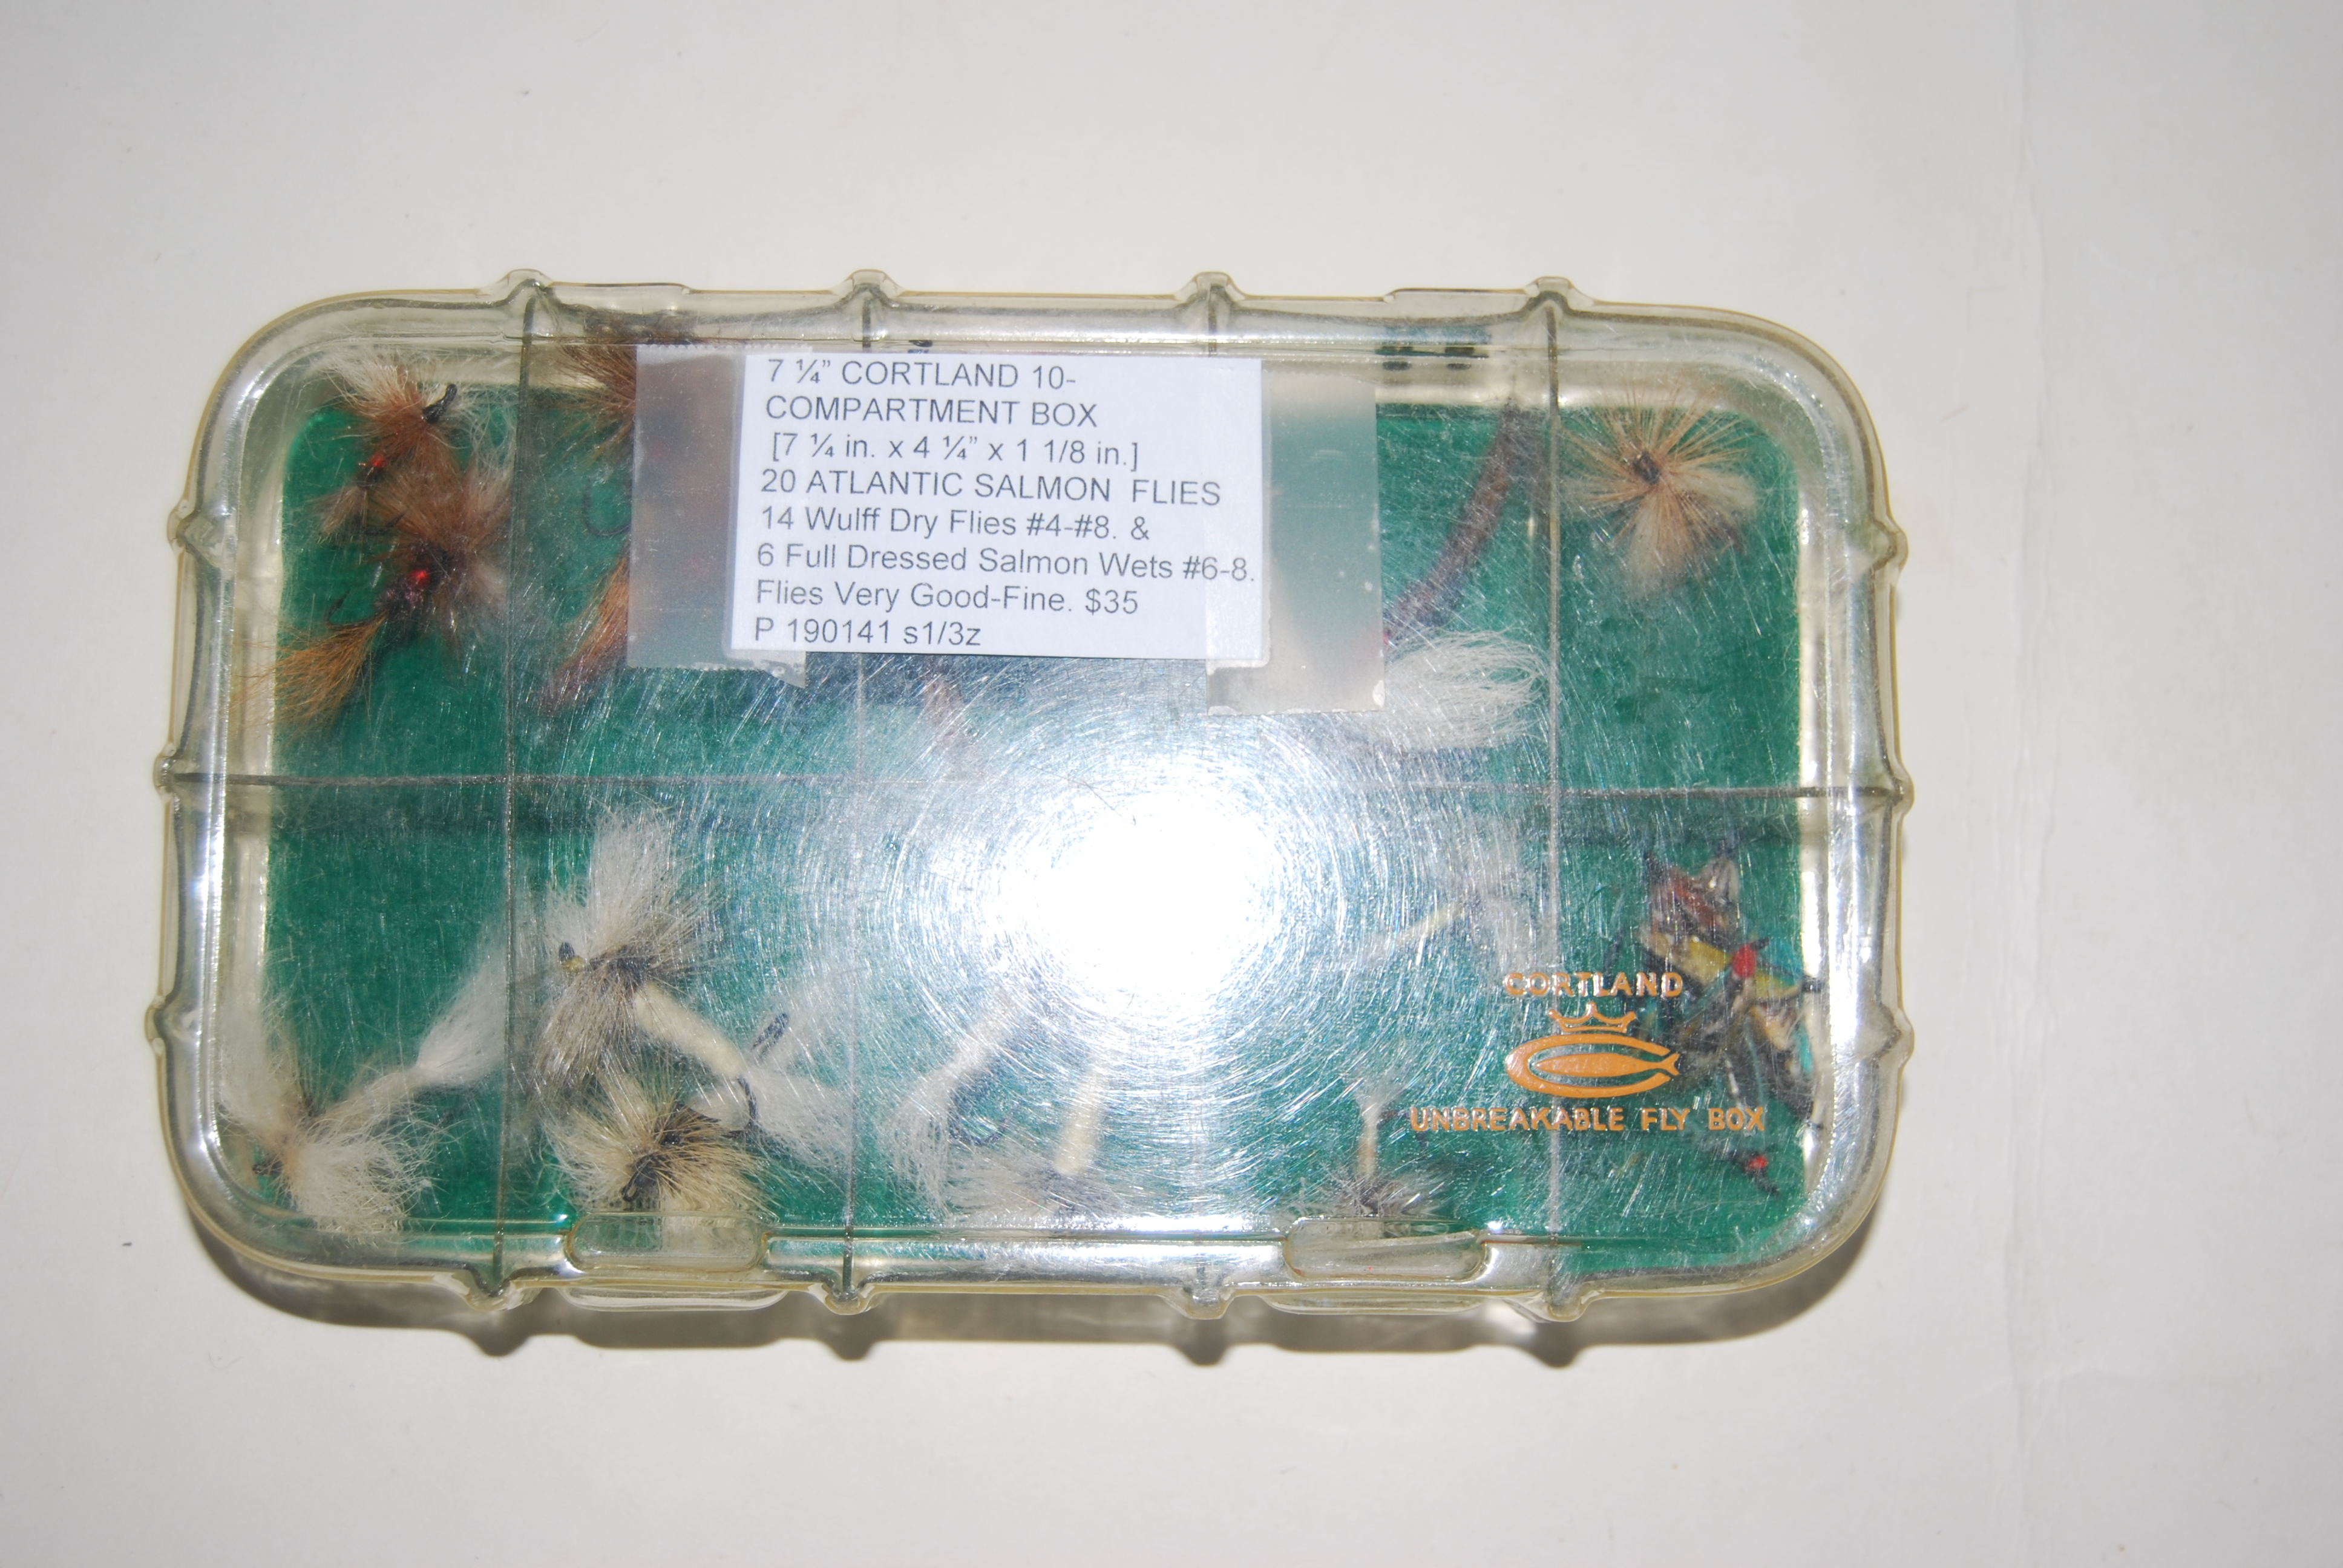 "Image for 7 ¼"" CORTLAND 10 COMPARTMENT BOX  [7 ¼ in. x 4 ¼"" x 1 1/8 in.] + 20 ATLANTIC SALMON  FLIES."